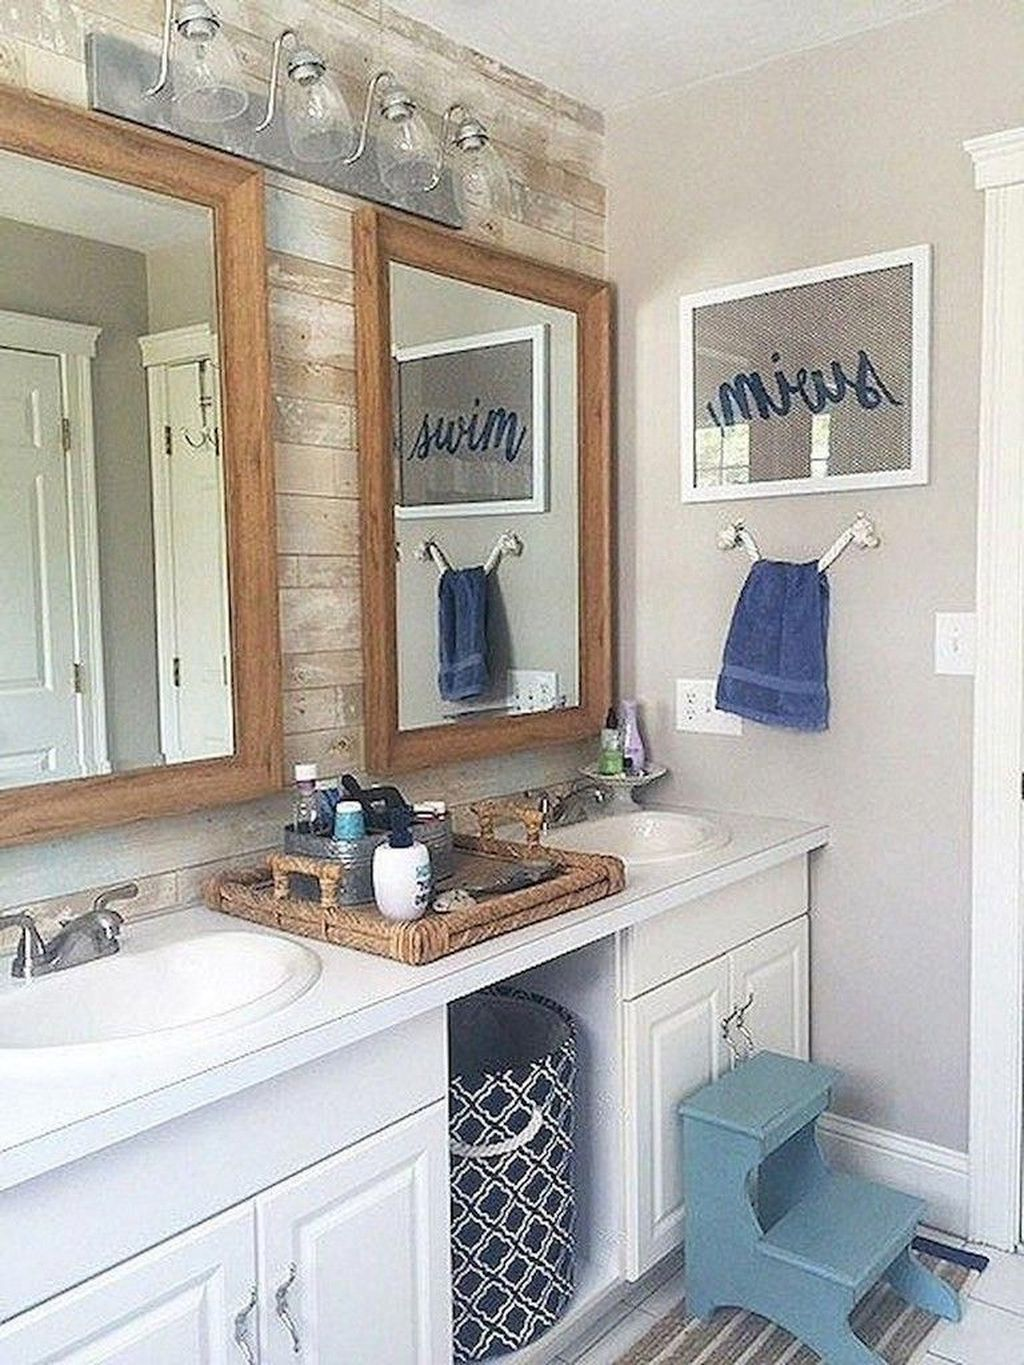 39 Stylish Coastal Nautical Bathroom Designs Ideas Decoomo Com In 2020 Diy Bathroom Remodel Coastal Bathroom Decor Nautical Bathroom Design Ideas